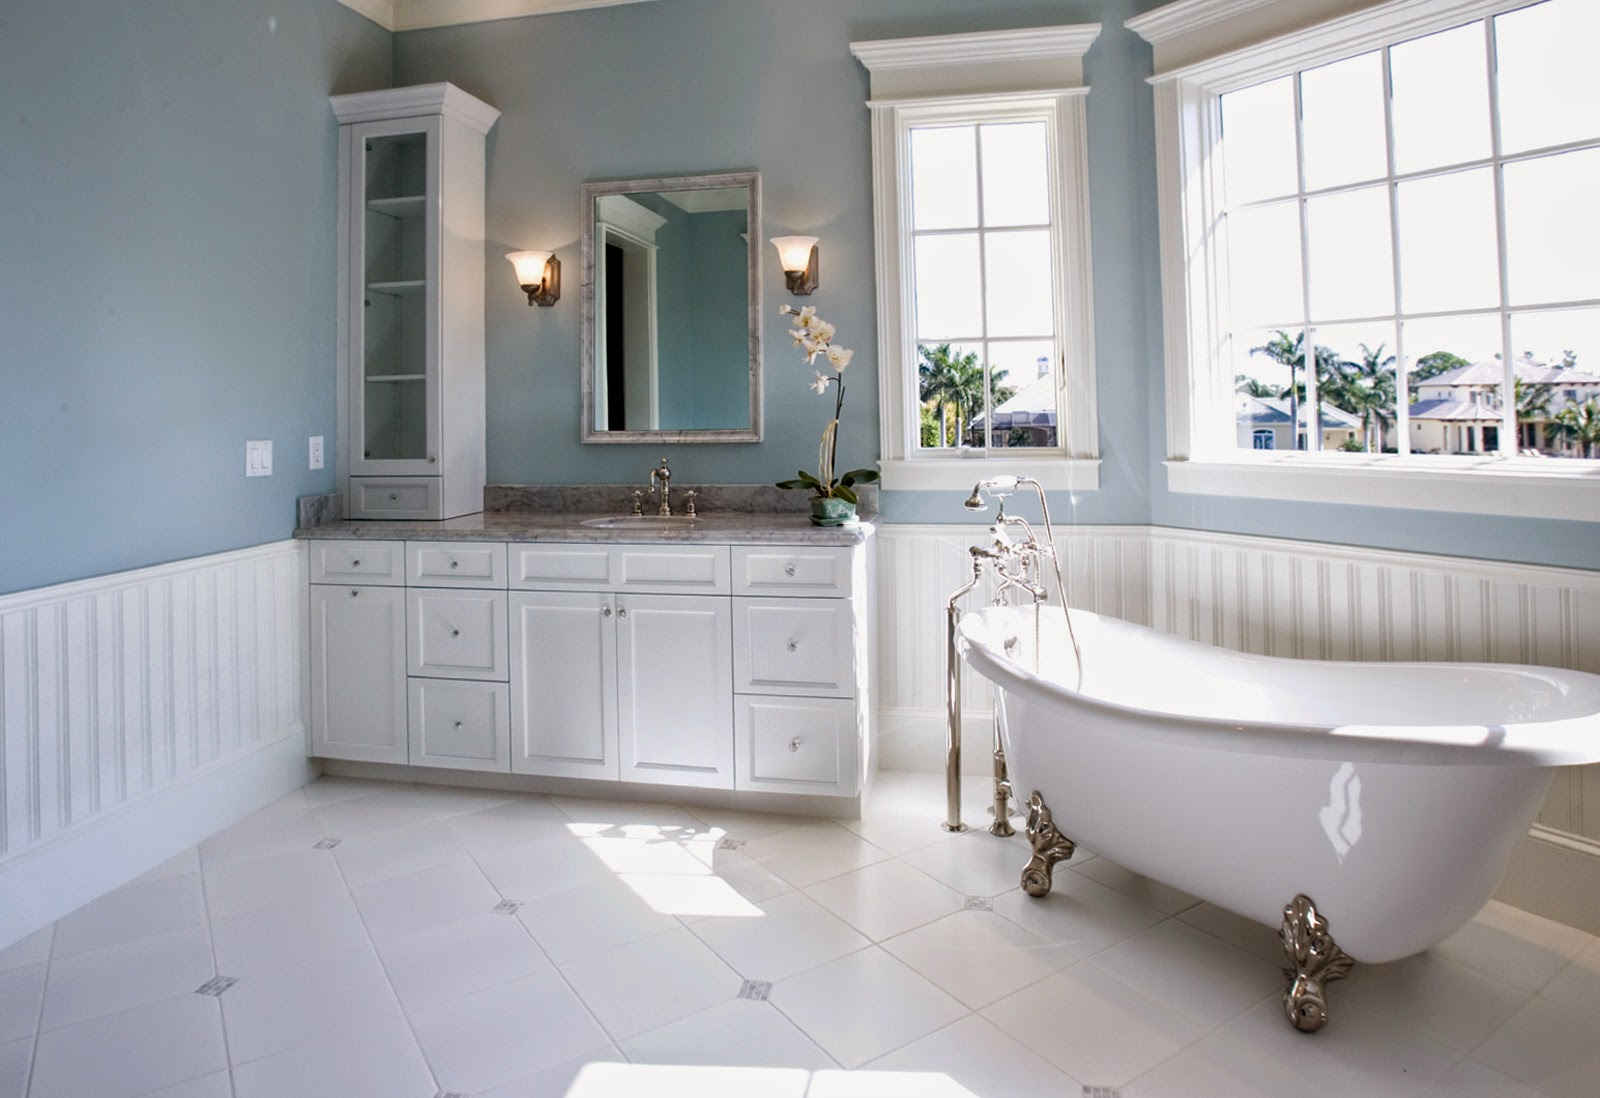 Top 10 beautiful bathroom design 2014 home interior blog magazine - Pictures of bathroom designs ...